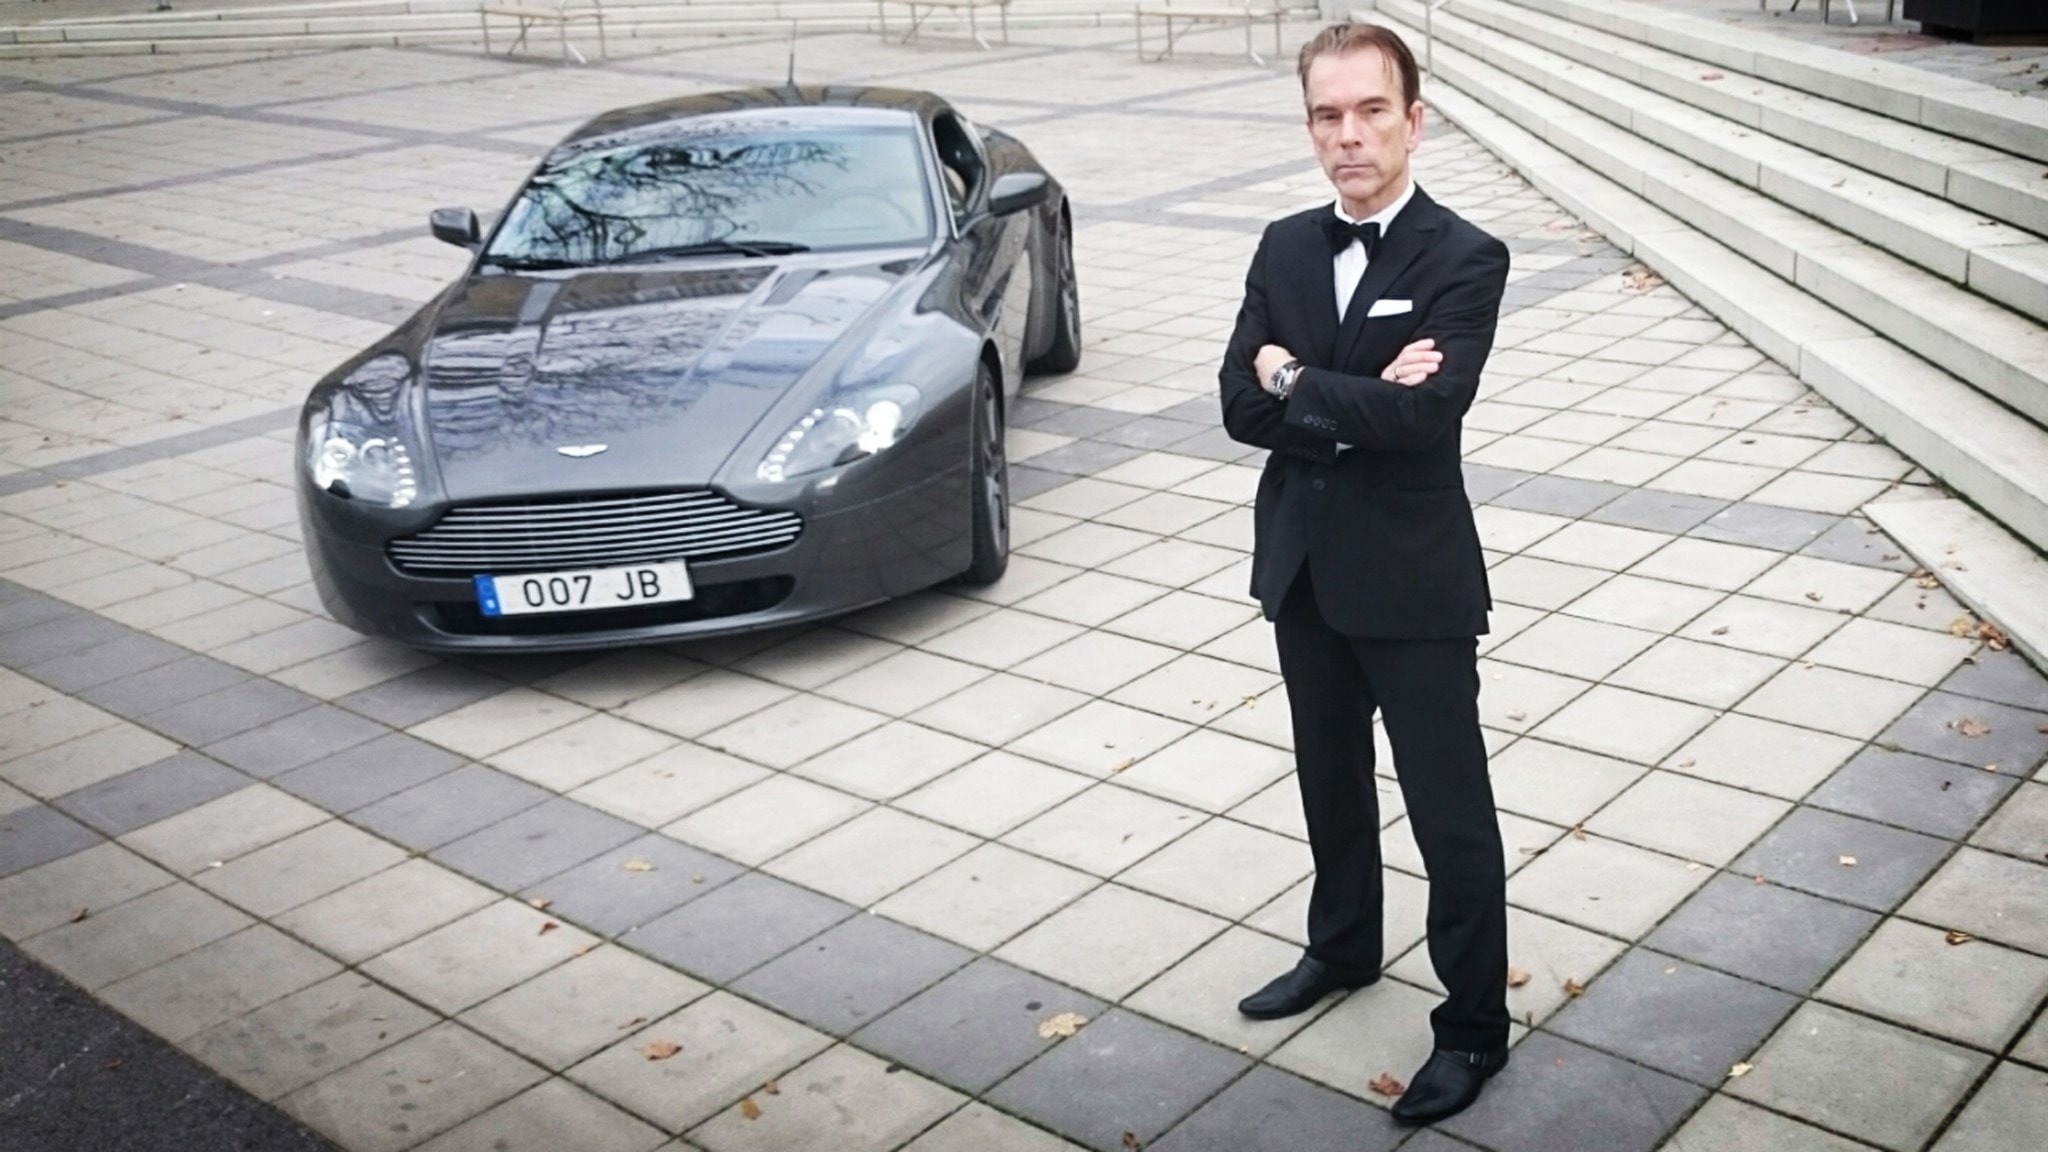 Gunnar James Bond Schäfer. Foto: Nick Näslund/Sveriges Radio